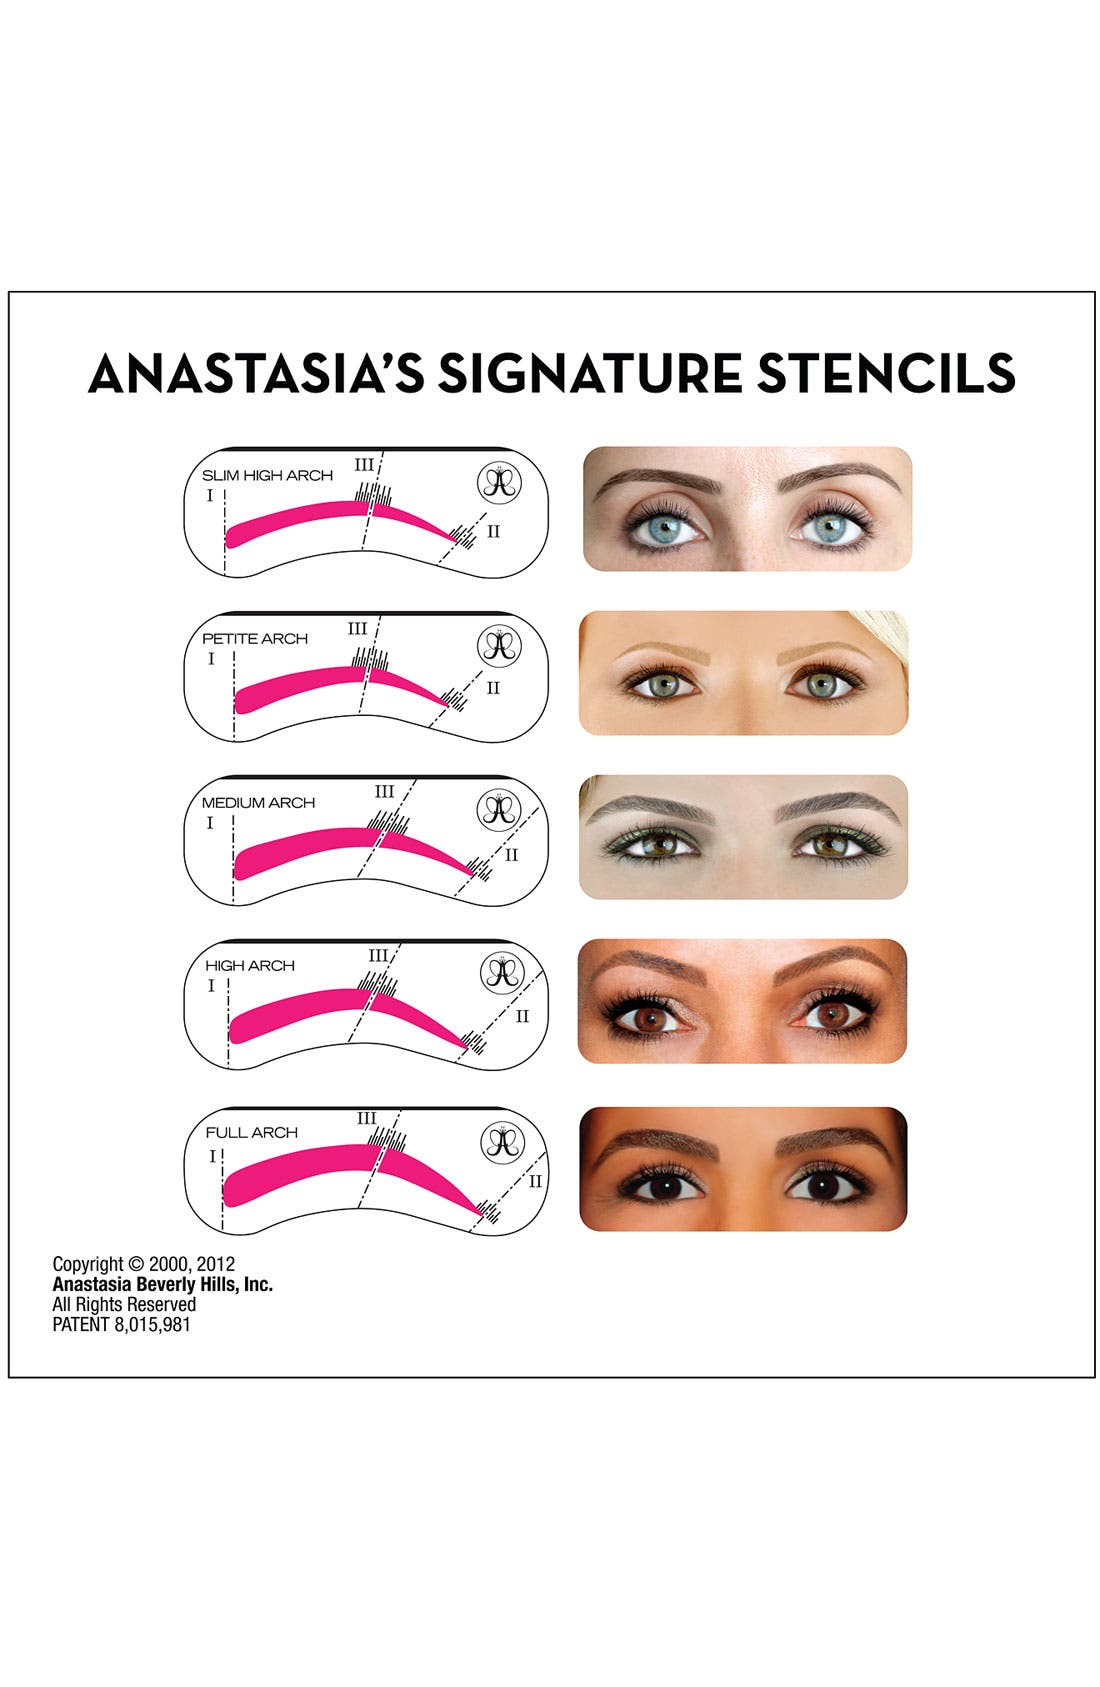 How It Works: Anastasia Beverly Hills ClassicStencils advise